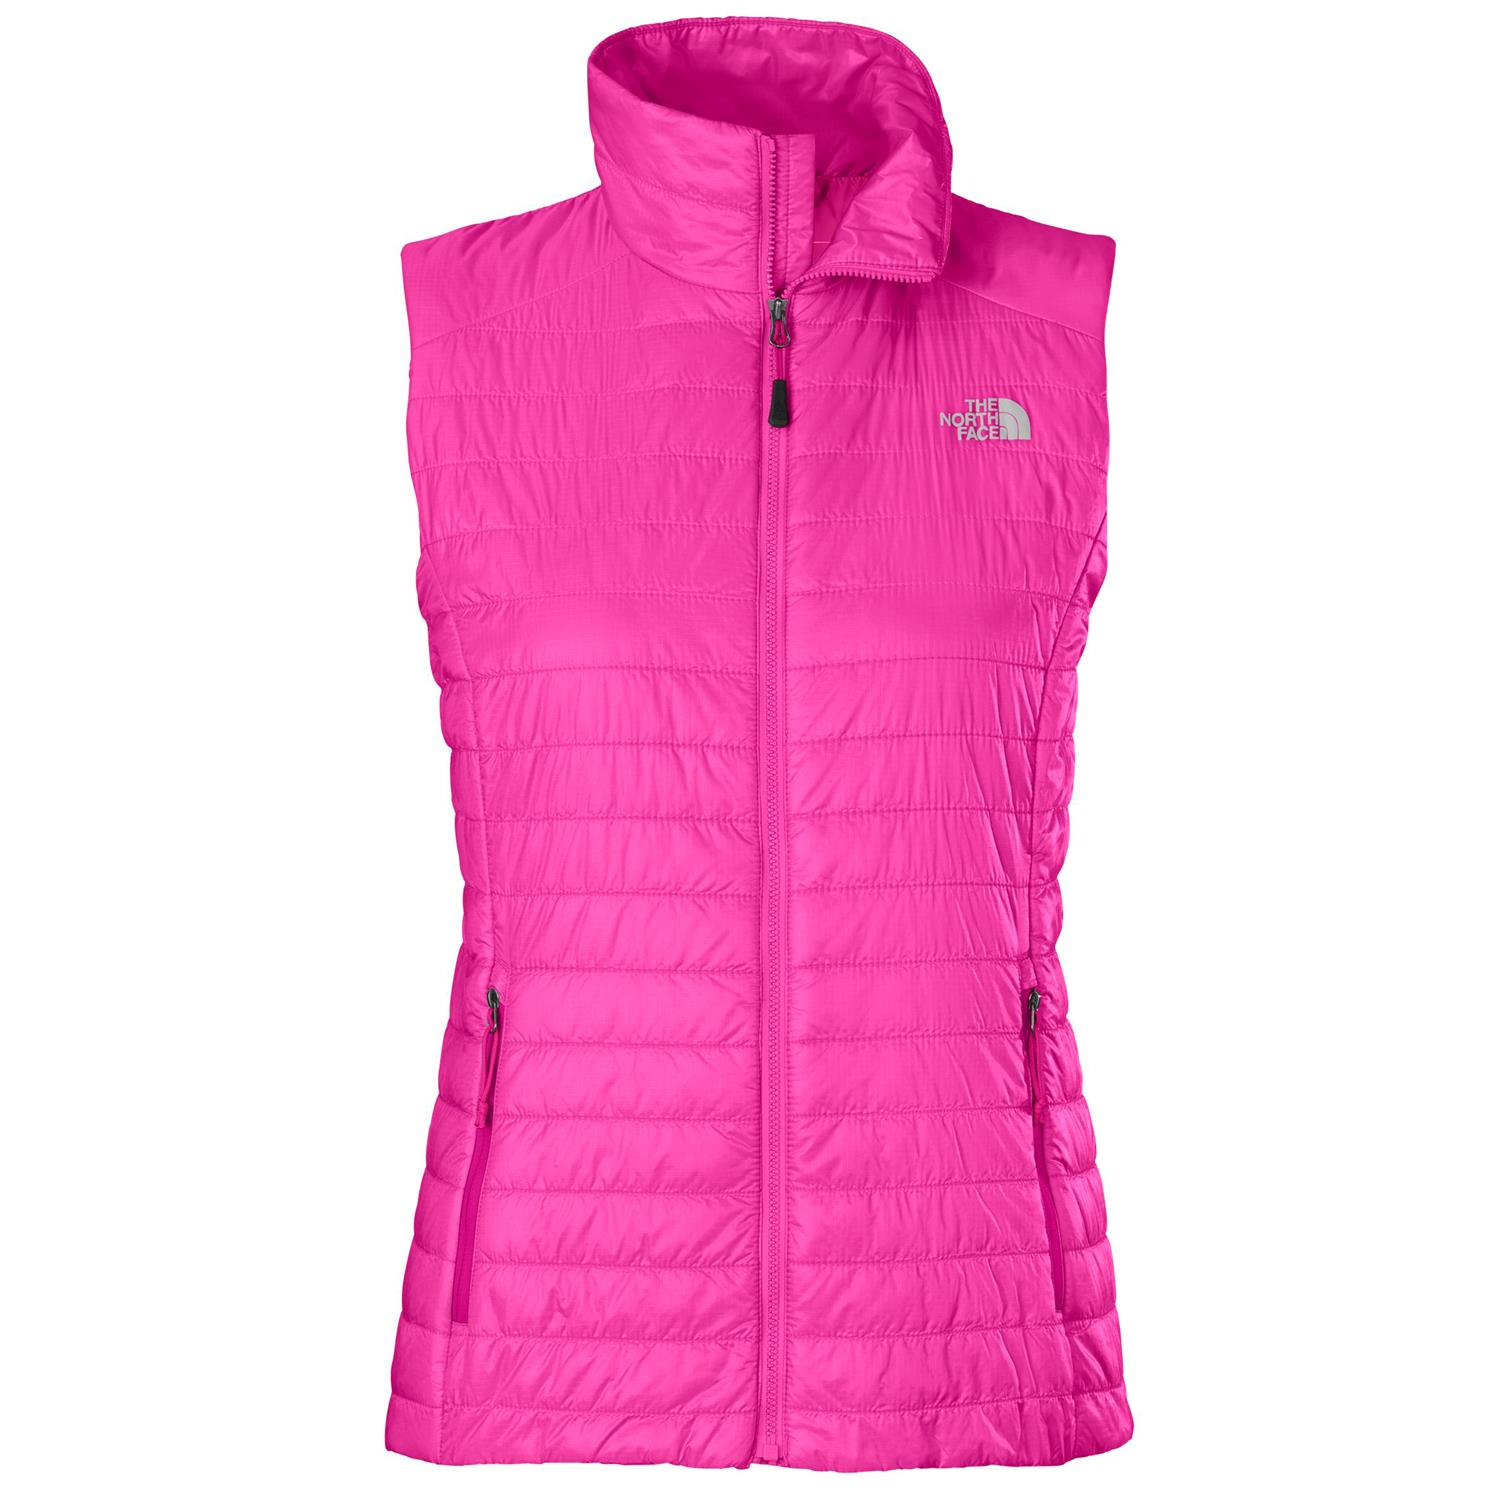 North Face Womens Shoes Clearance Clinic